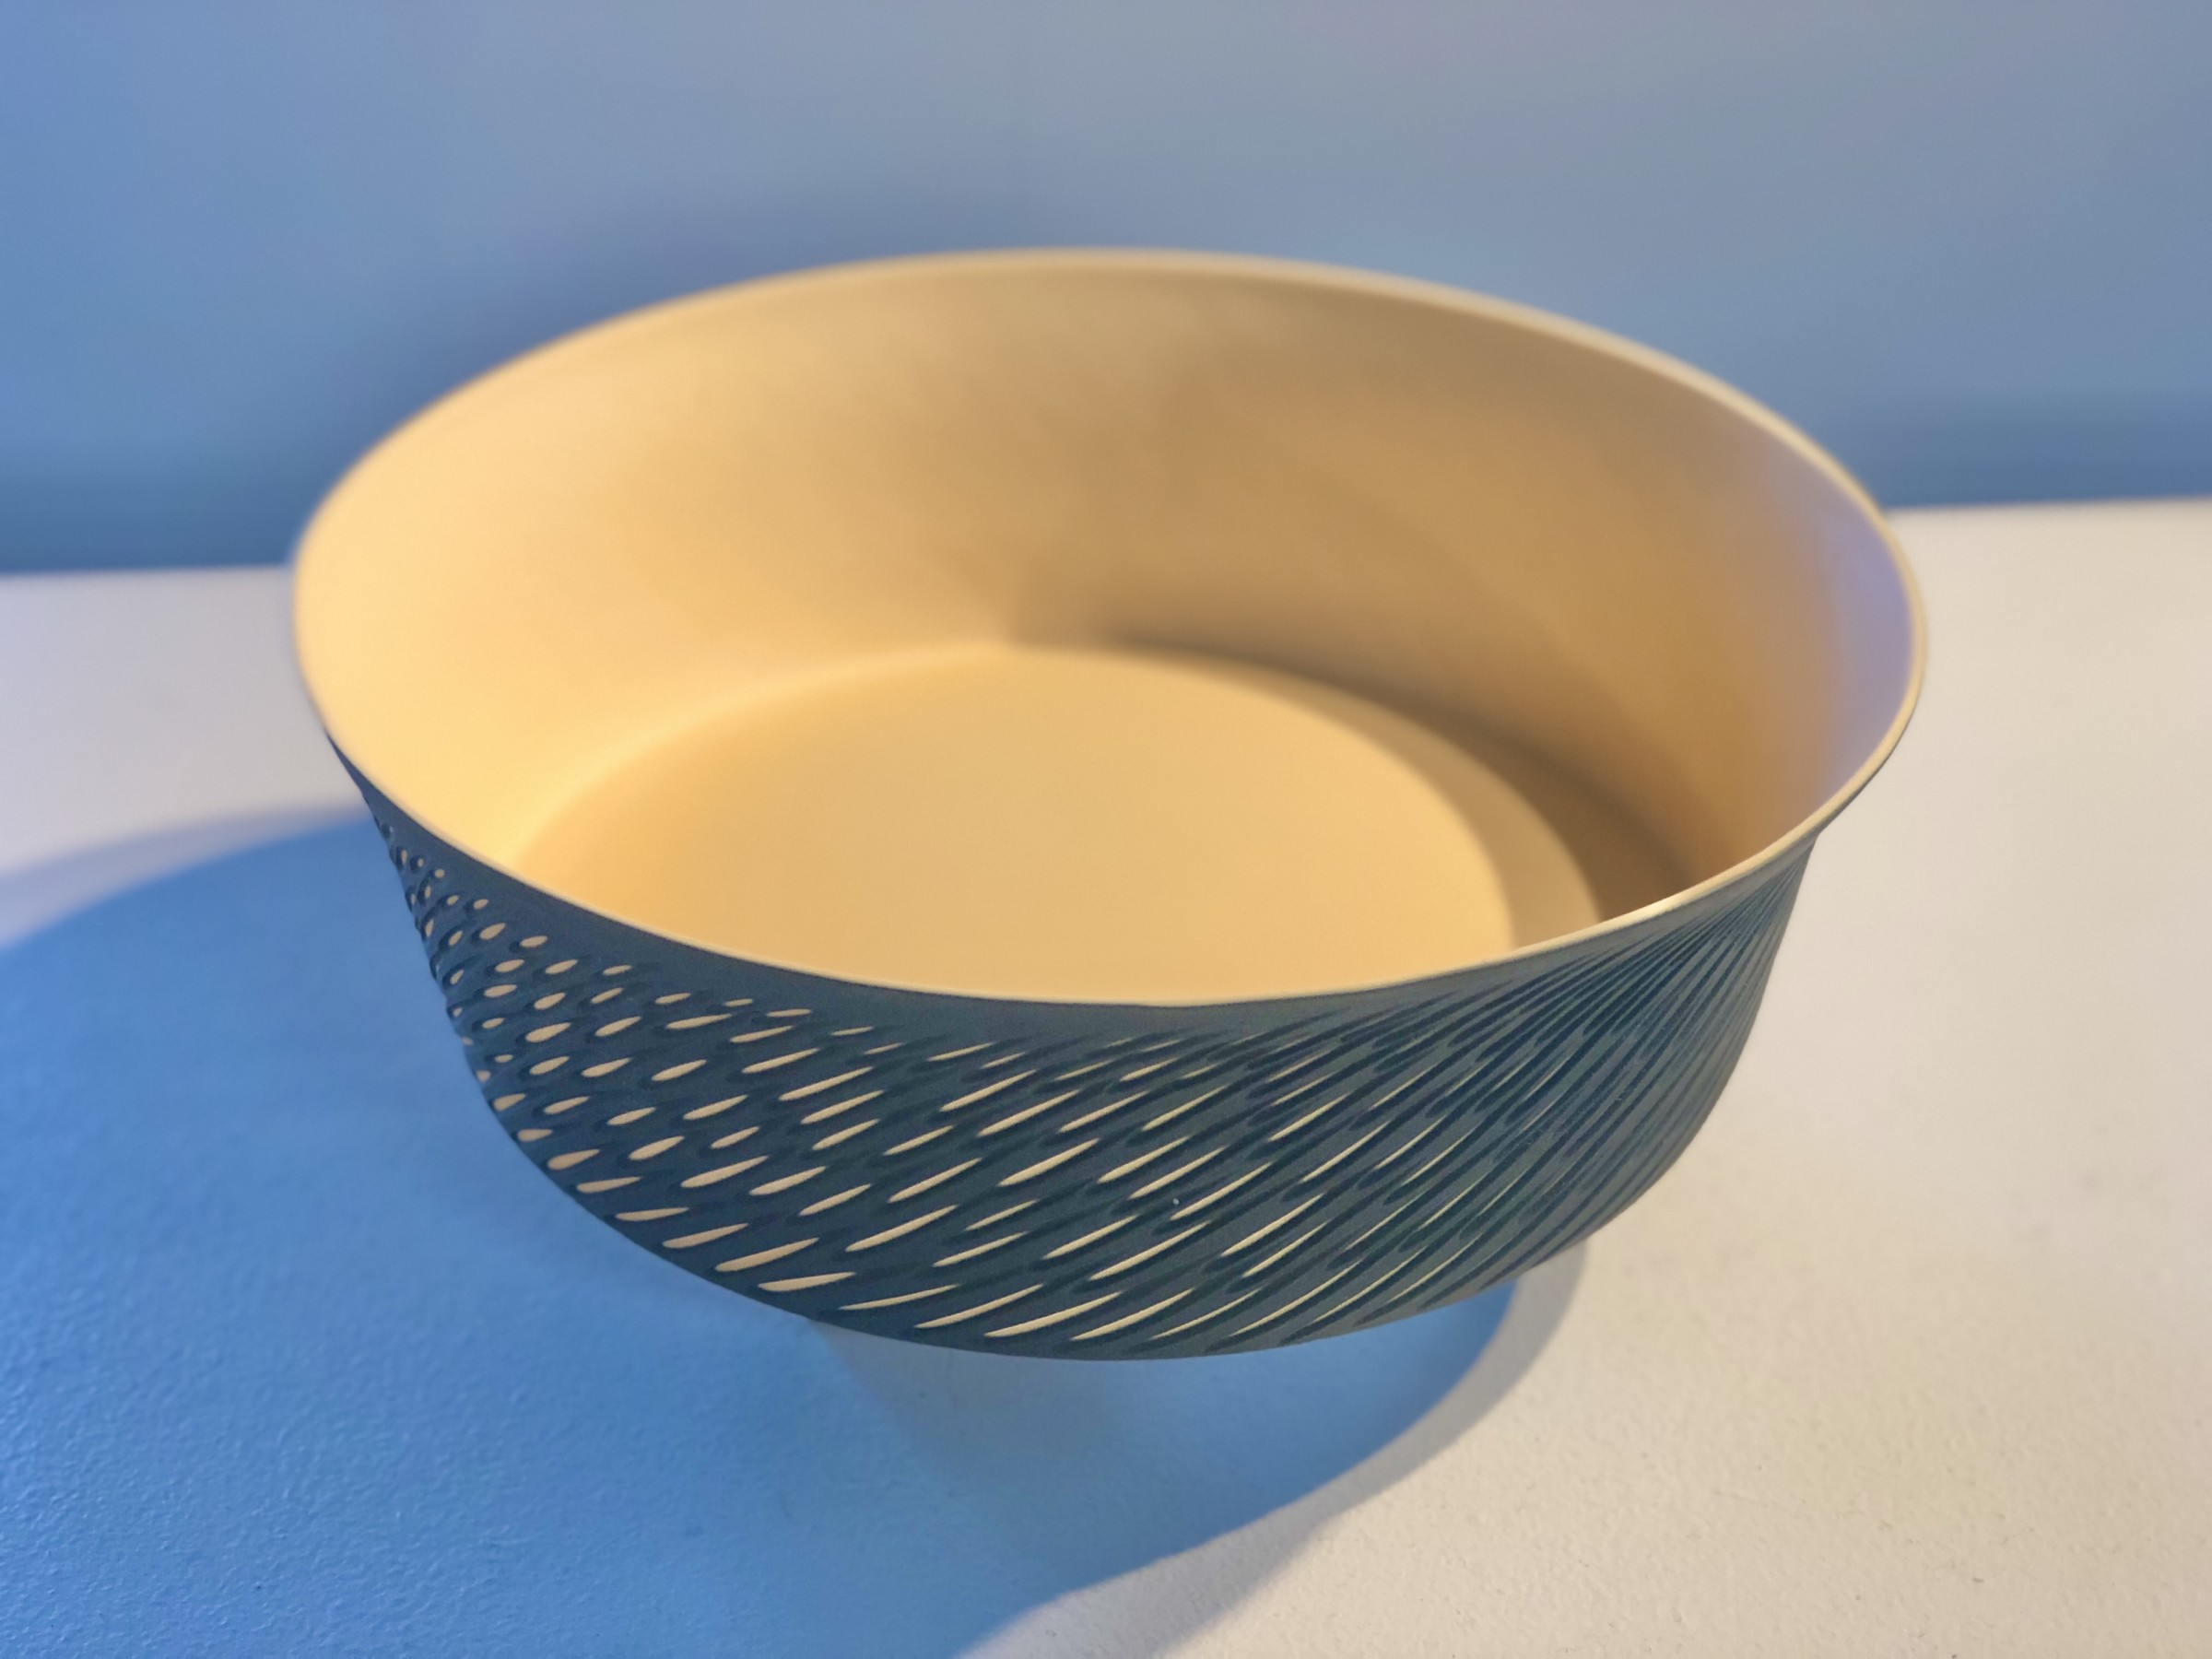 "<span class=""link fancybox-details-link""><a href=""/artists/60-sasha-wardell/works/7060-sasha-wardell-large-straight-sided-dish-shoal-2020/"">View Detail Page</a></span><div class=""artist""><strong>Sasha Wardell</strong></div> <div class=""title""><em>Large Straight Sided Dish Shoal</em>, 2020</div> <div class=""medium"">Layered Porcelain </div><div class=""price"">£270.00</div><div class=""copyright_line"">Ownart: £48 x 10 Months, 0% APR</div>"